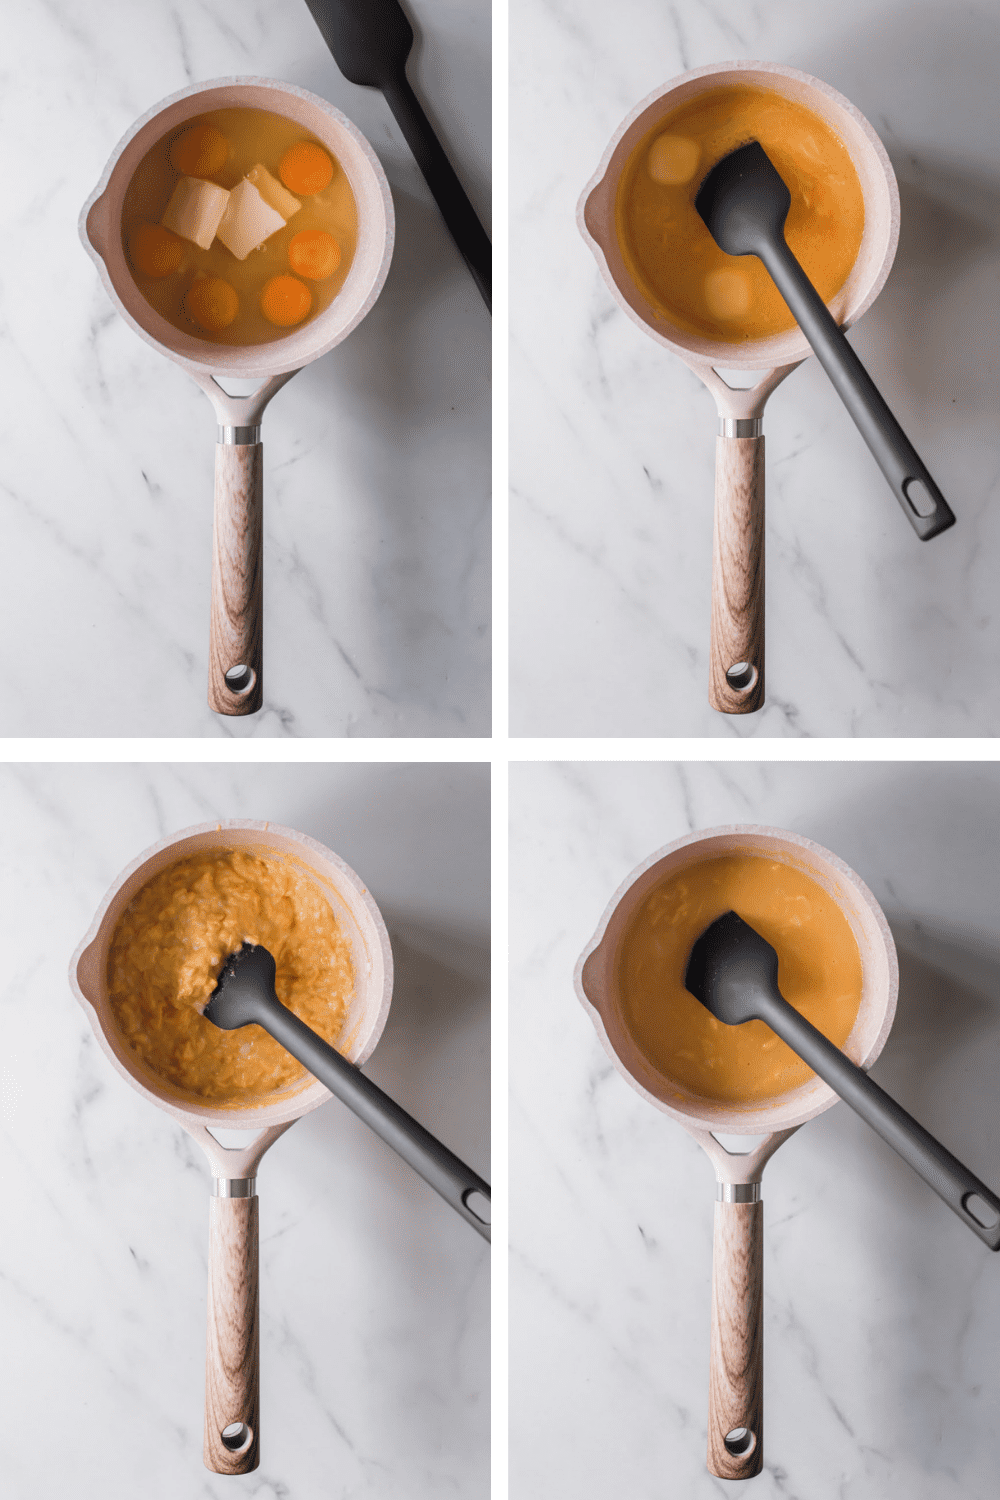 4 images showing the steps to making scrambled eggs in a white pot with a black spatula